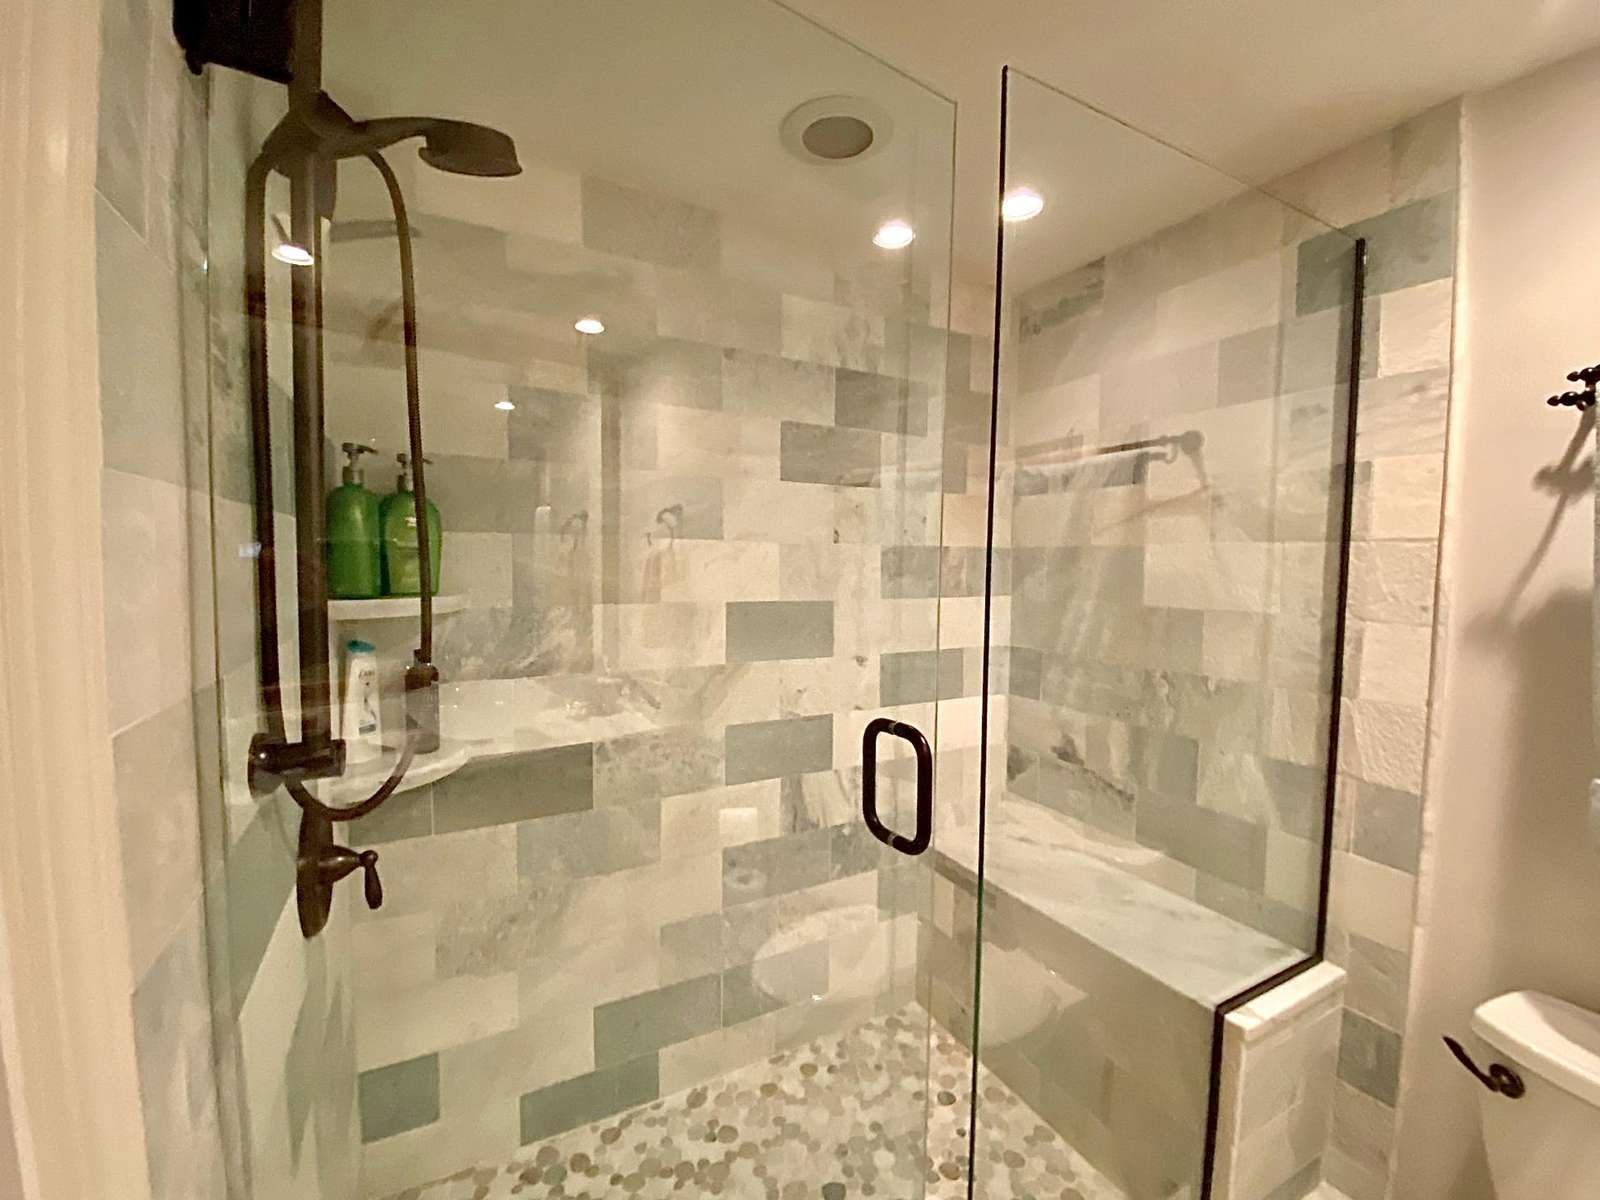 Guest bath, custom tiled shower, custom countertop and sink